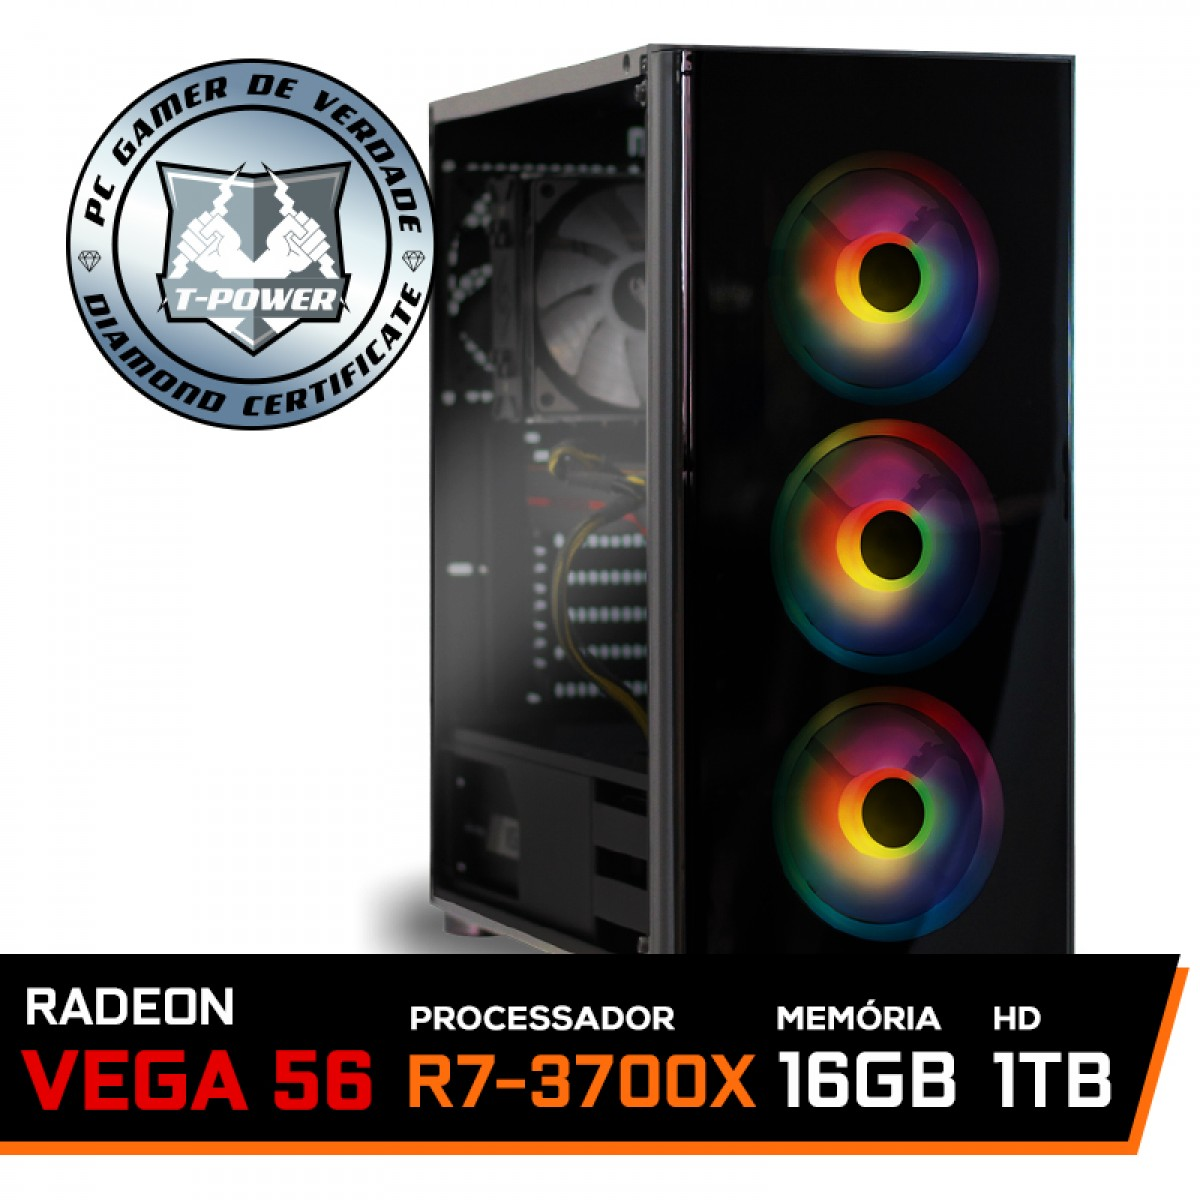 Pc Gamer T-Power Super Warlord Lvl-1 AMD Ryzen 7 3700X / Radeon Vega 56 8GB / DDR4 16GB / HD 1TB / 600W / RZ3